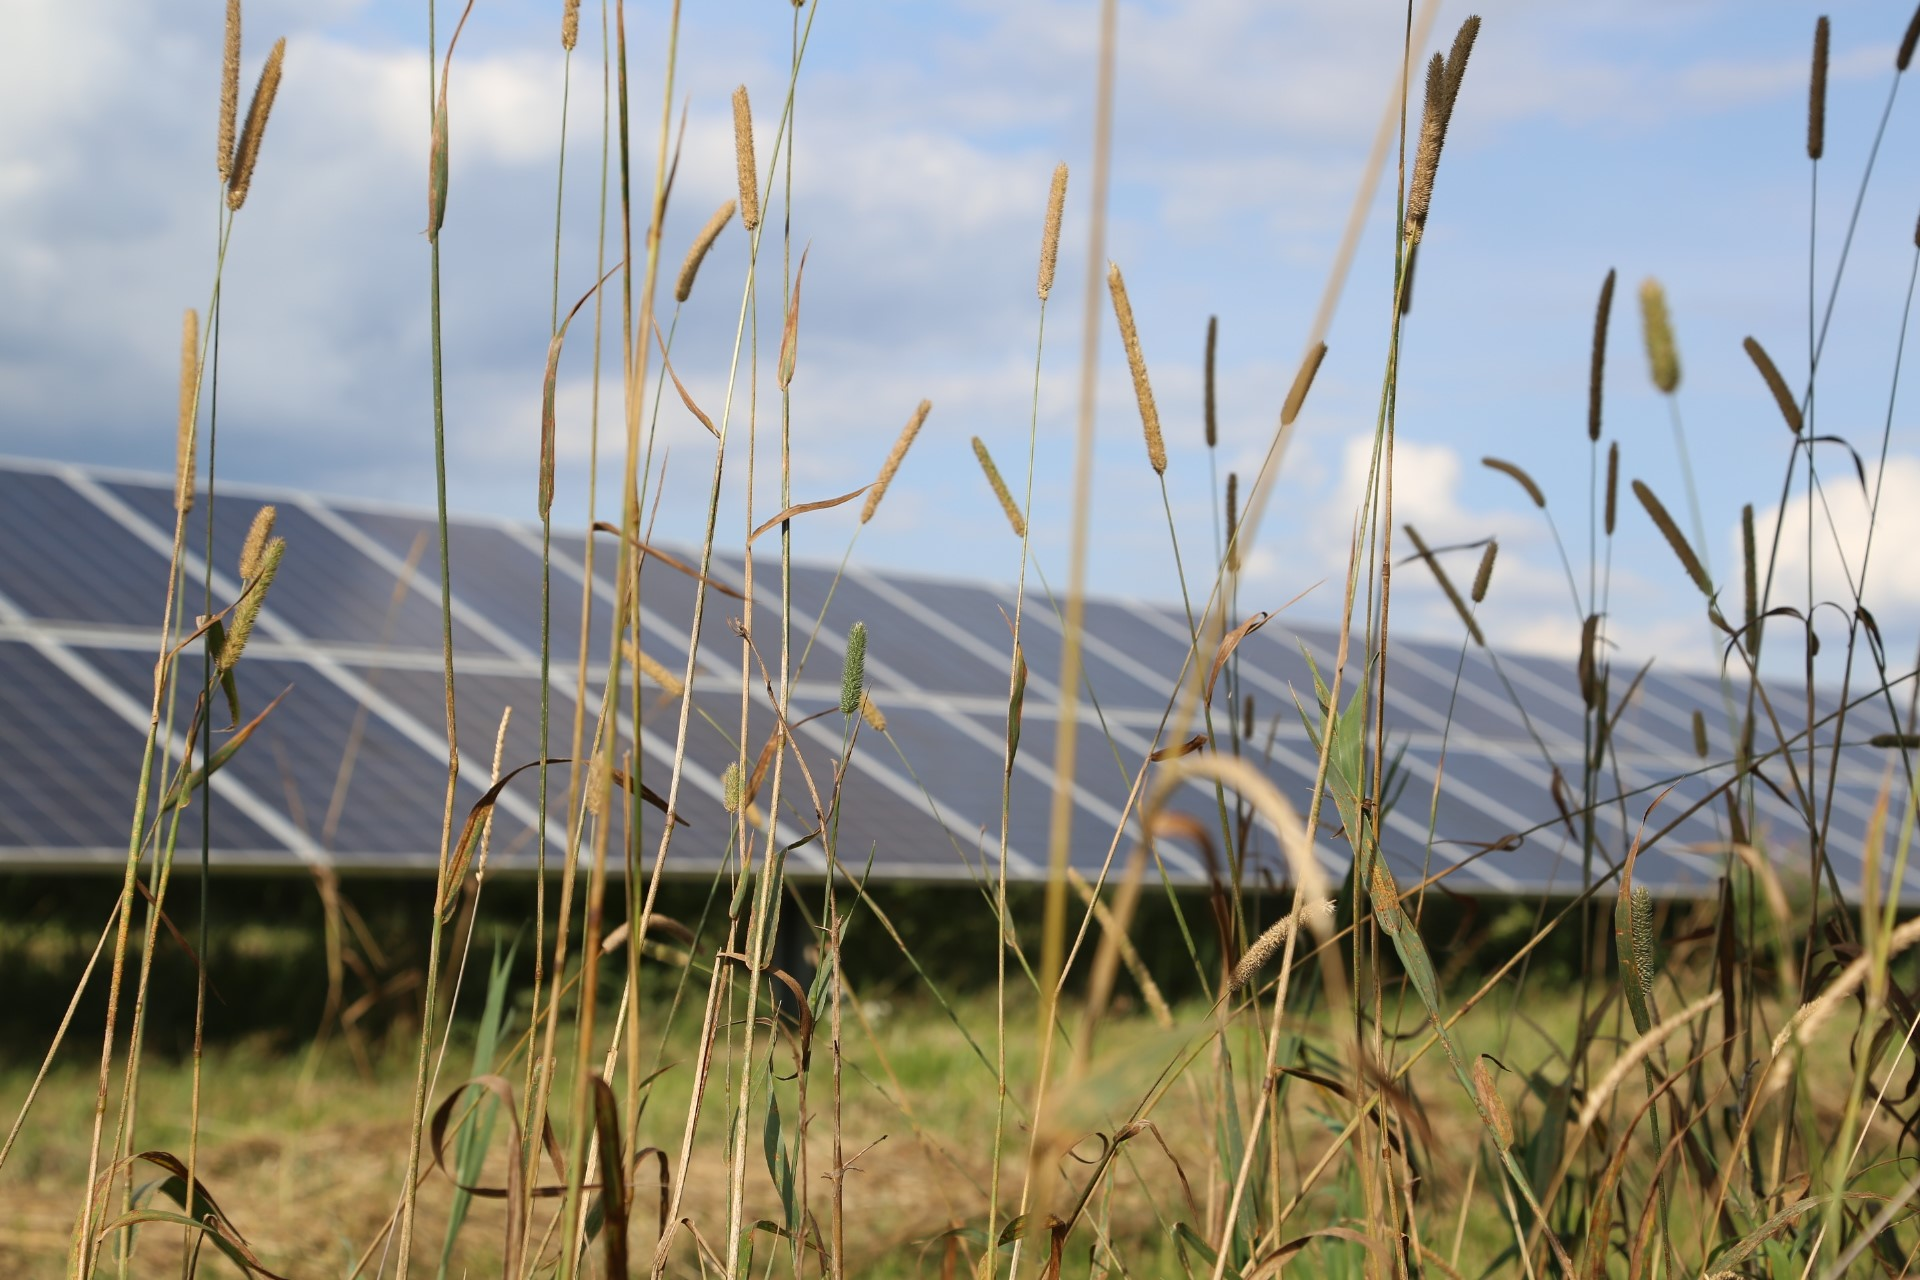 UK solar firm secures almost £50m backing for Spanish projects